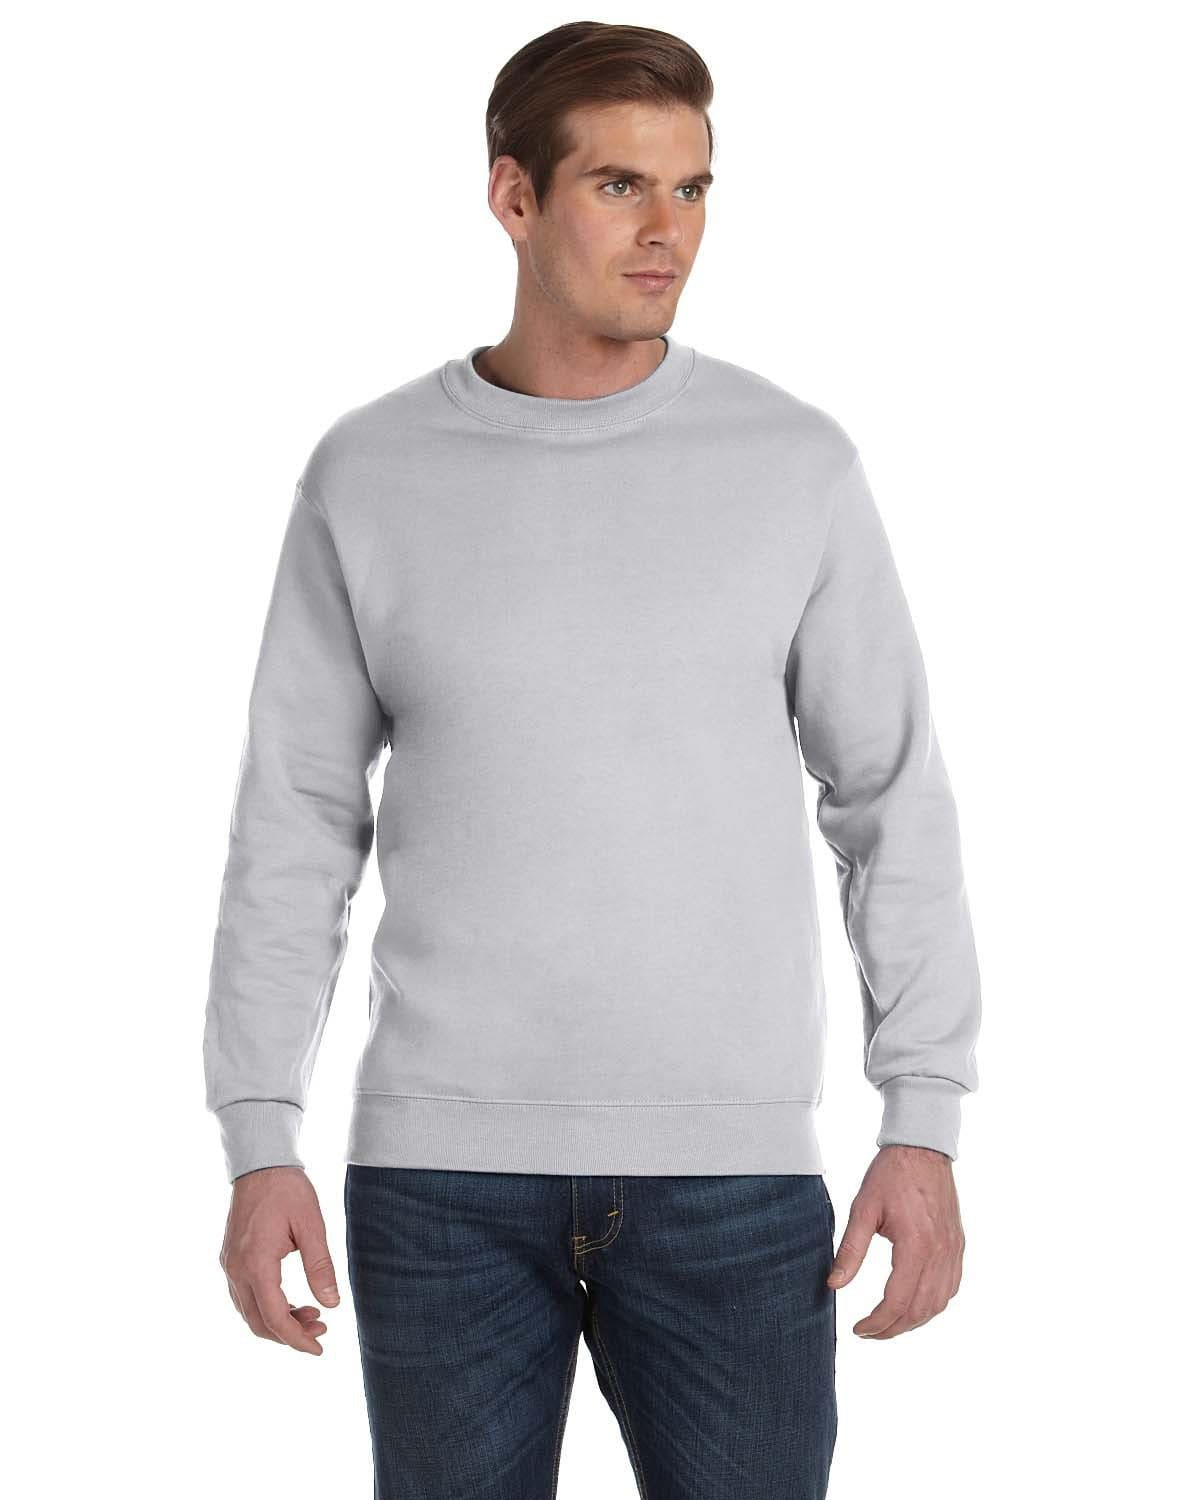 g120-adult-dryblend-adult-9-oz-50-50-fleece-crew-Small-ASH GREY-Oasispromos